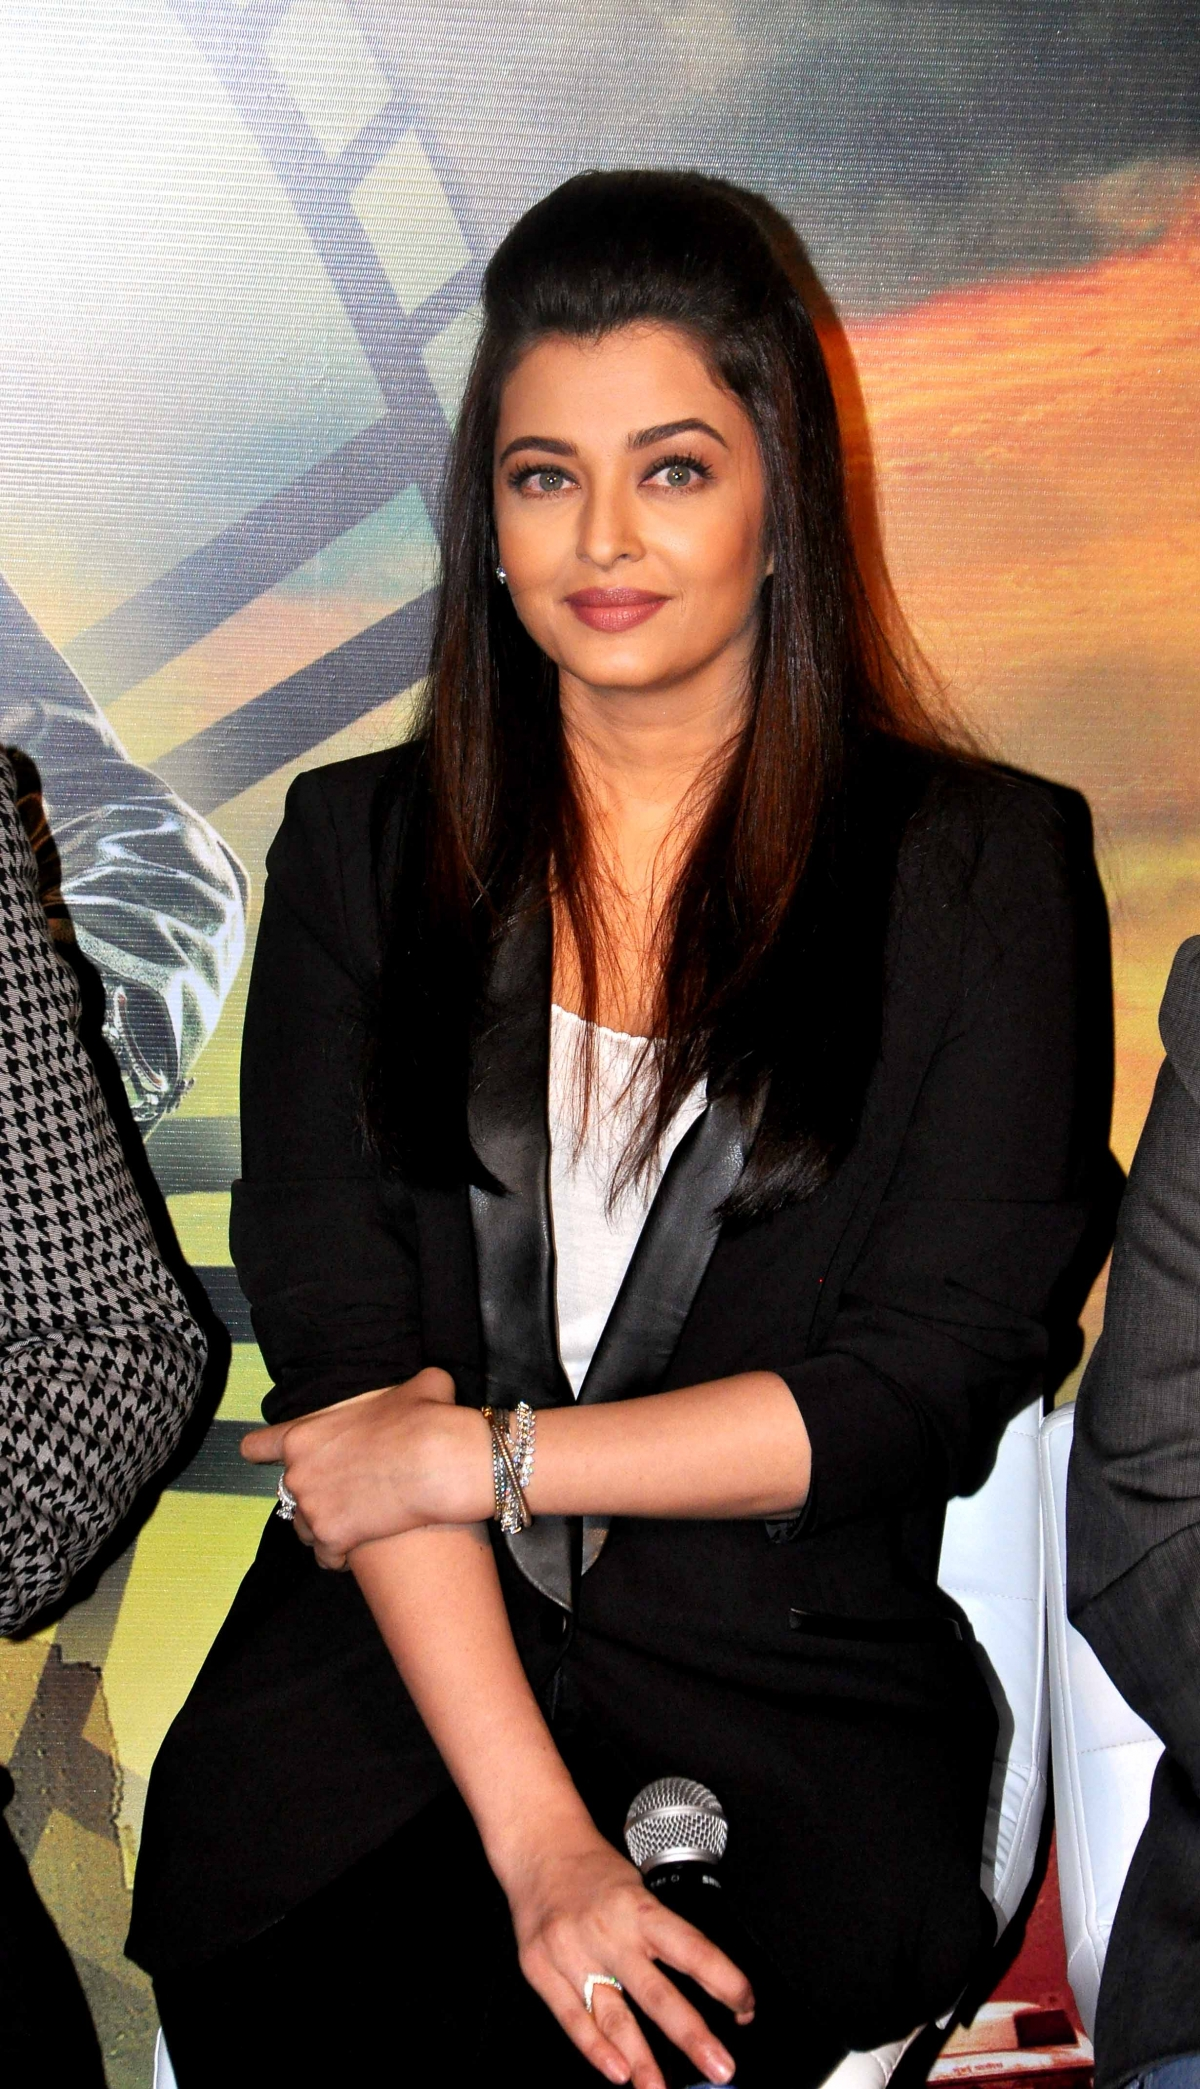 Aishwarya Rai Bachchan's Upcoming Movies With Release Dates